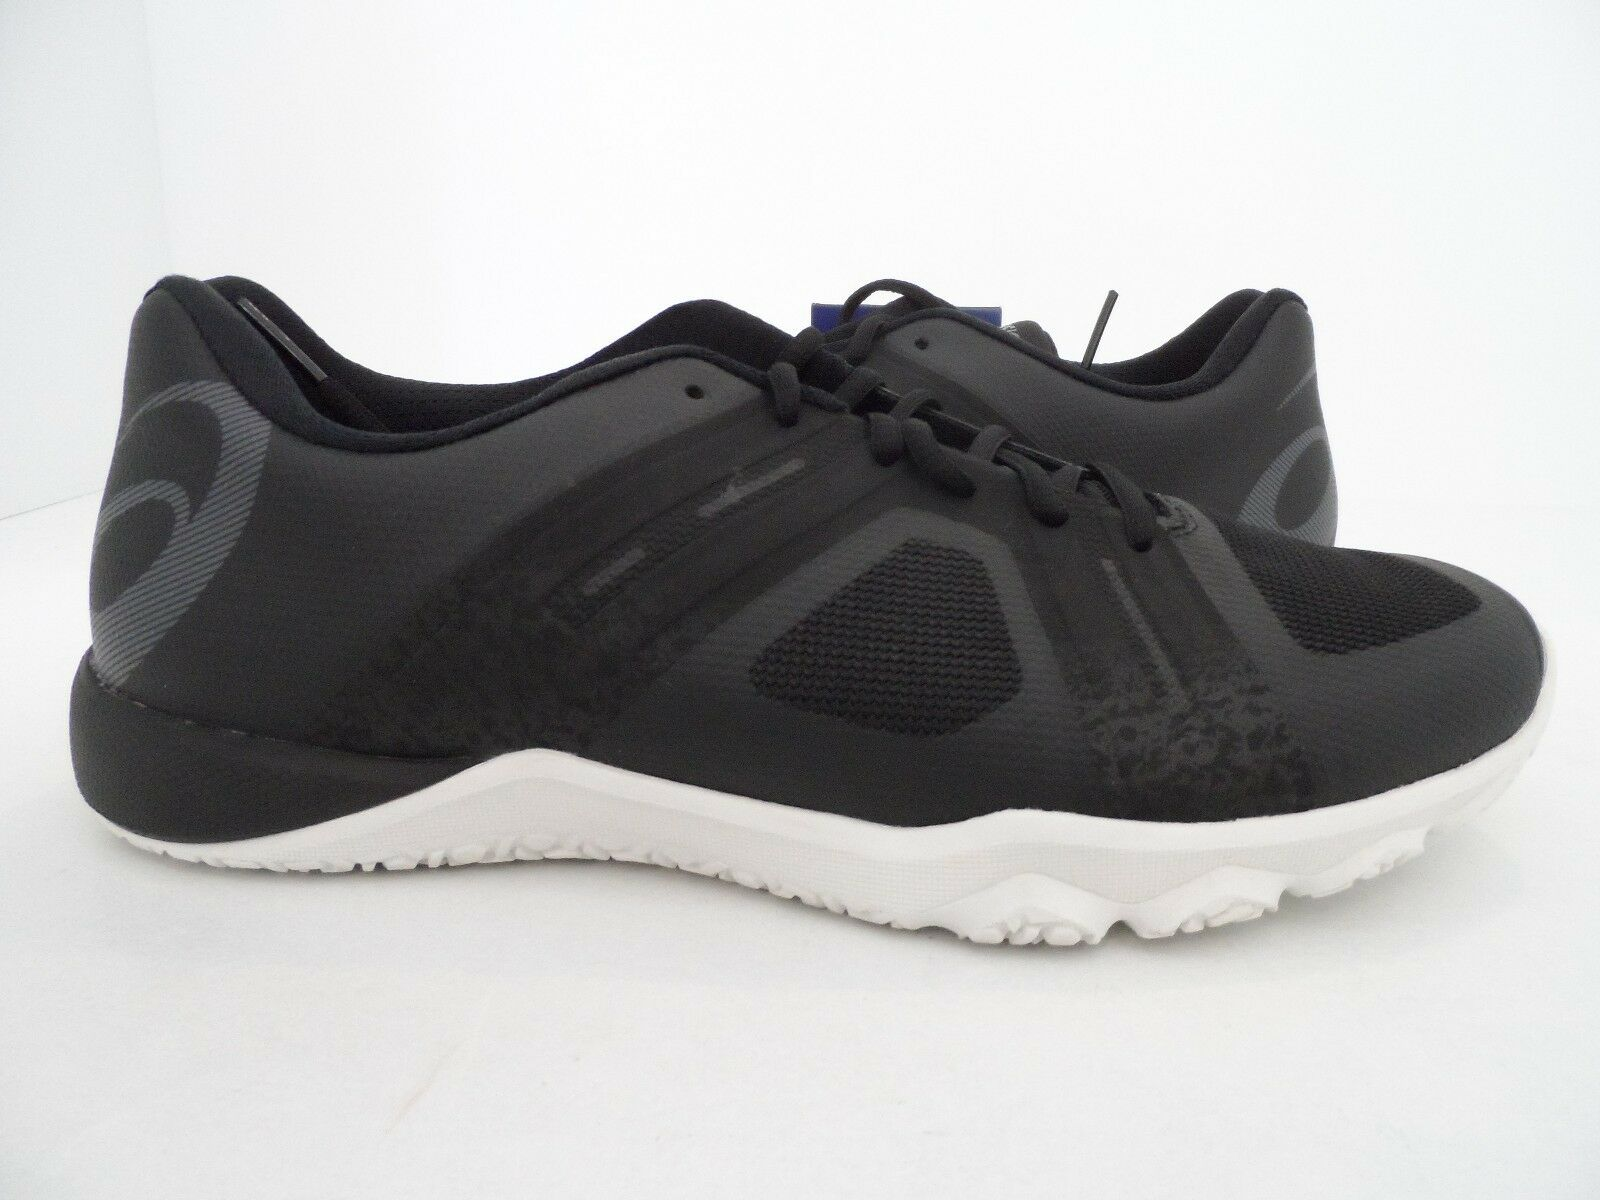 ASICS Women's Conviction X 2 Running shoes Black Carbon Flash Coral Size 8